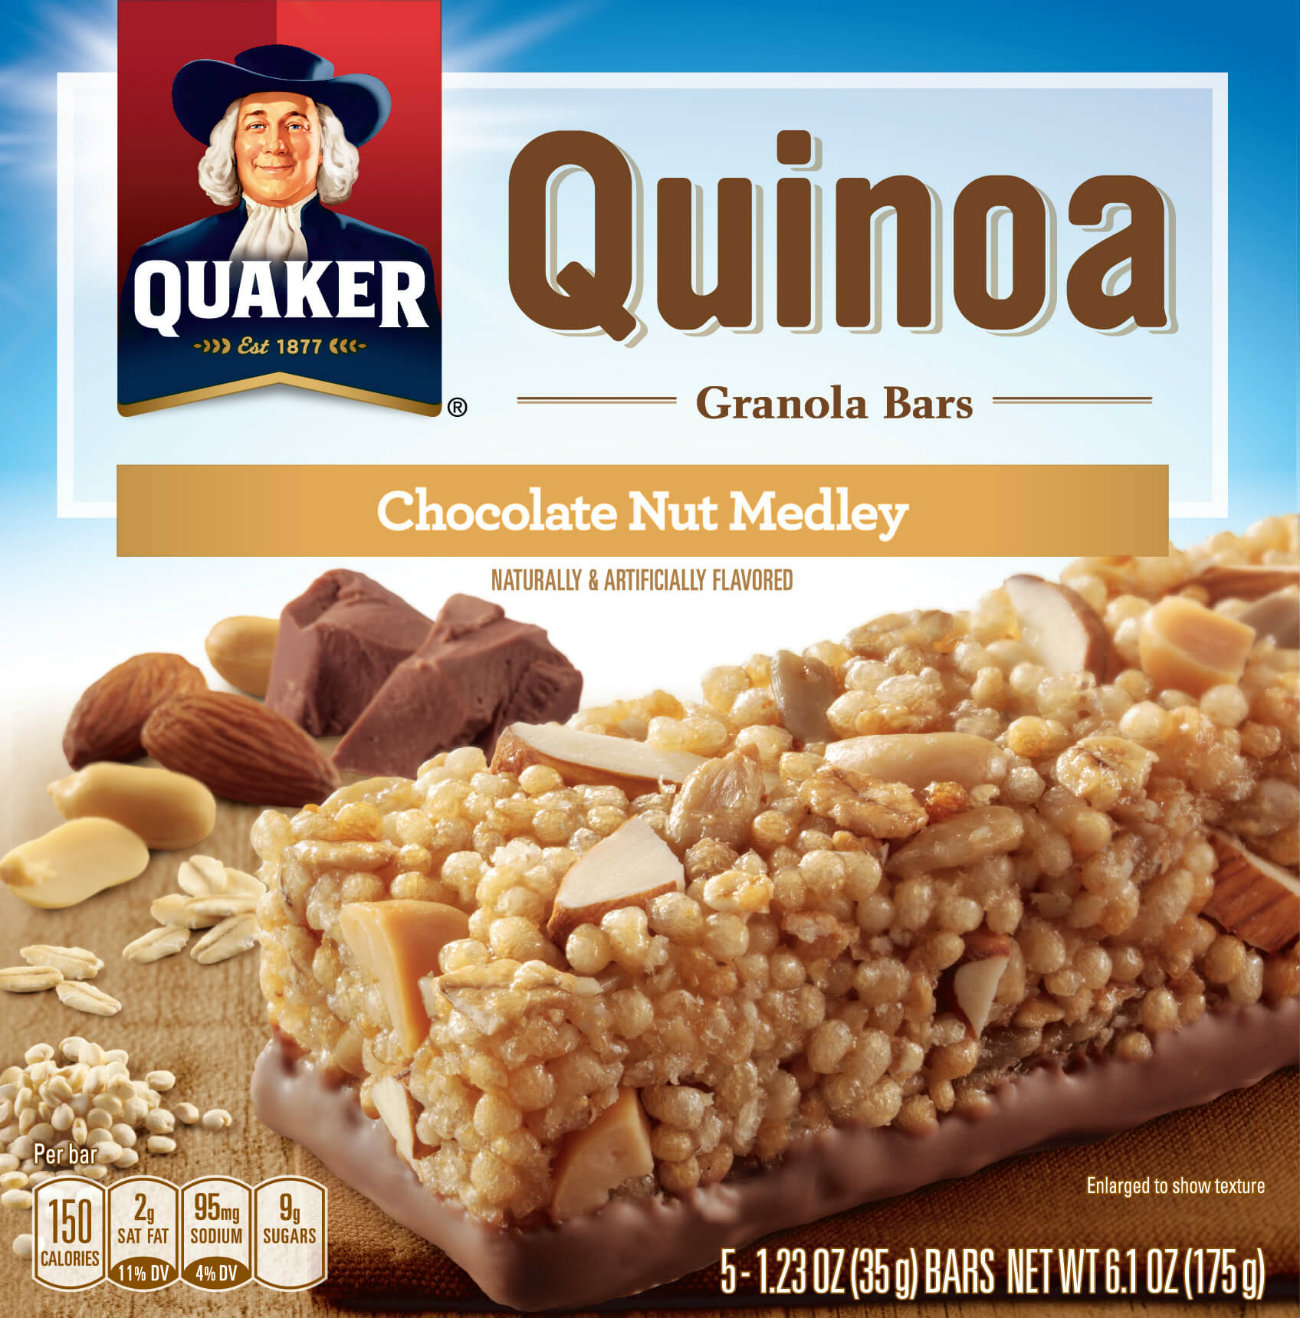 Photo from Quaker Oats